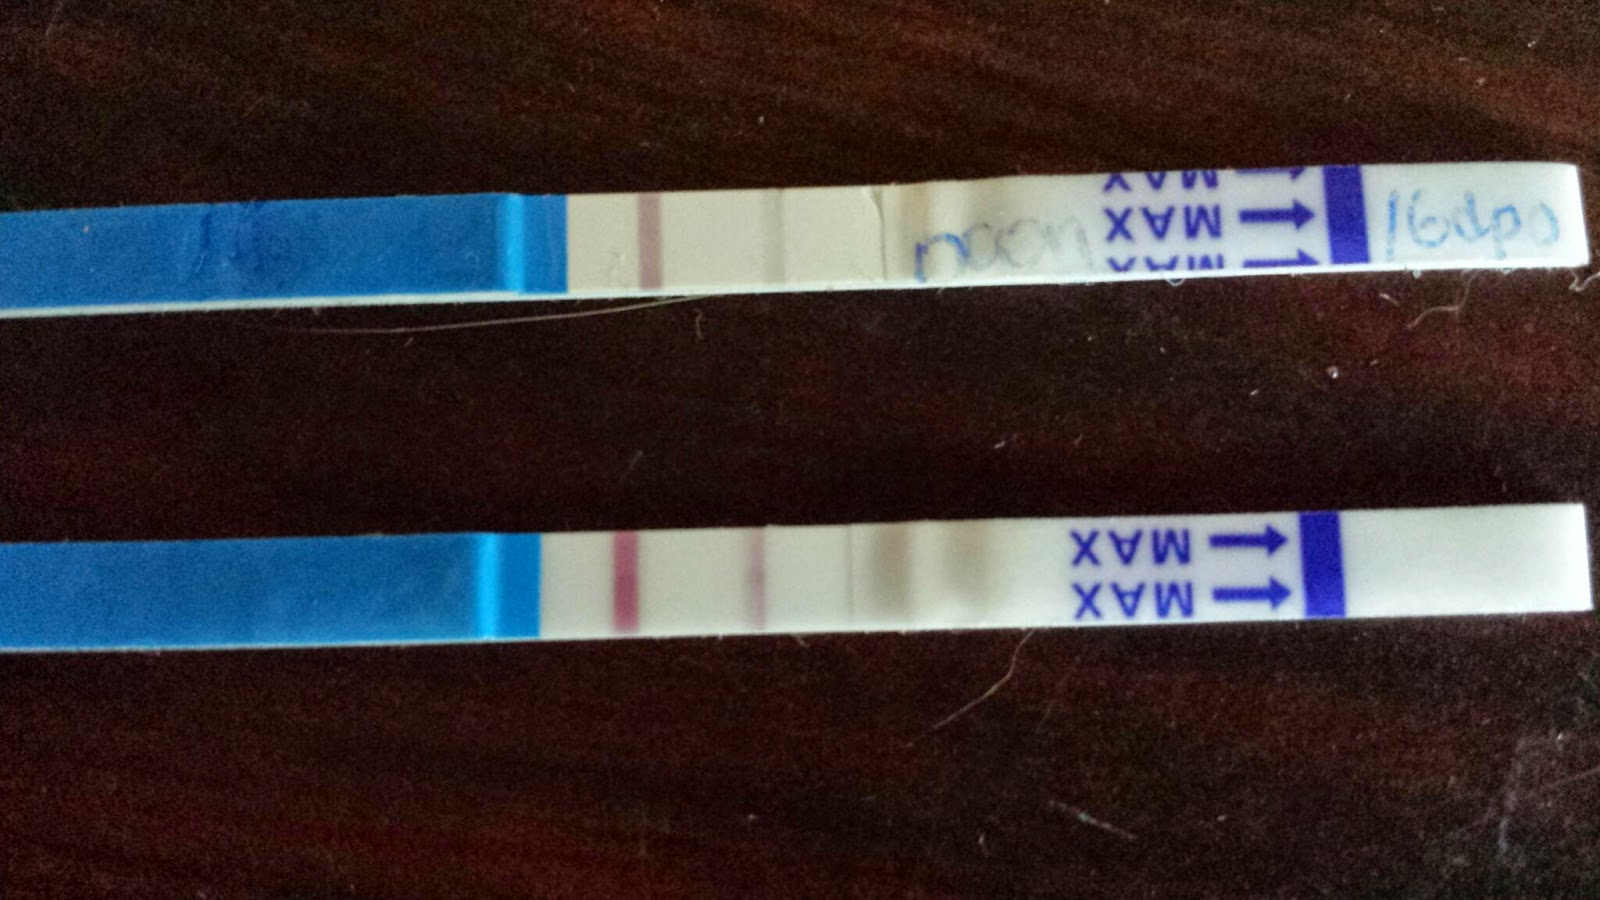 Waiting For Our Little Sprouts: Pregnancy Test 16 dpo and 17 dpo